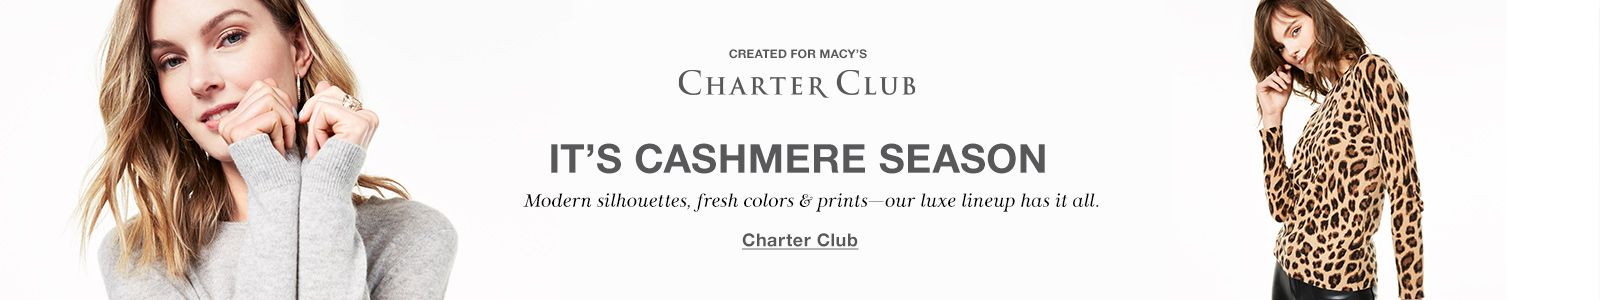 Created For Macy's, Its Cashmere Season, Charter Club